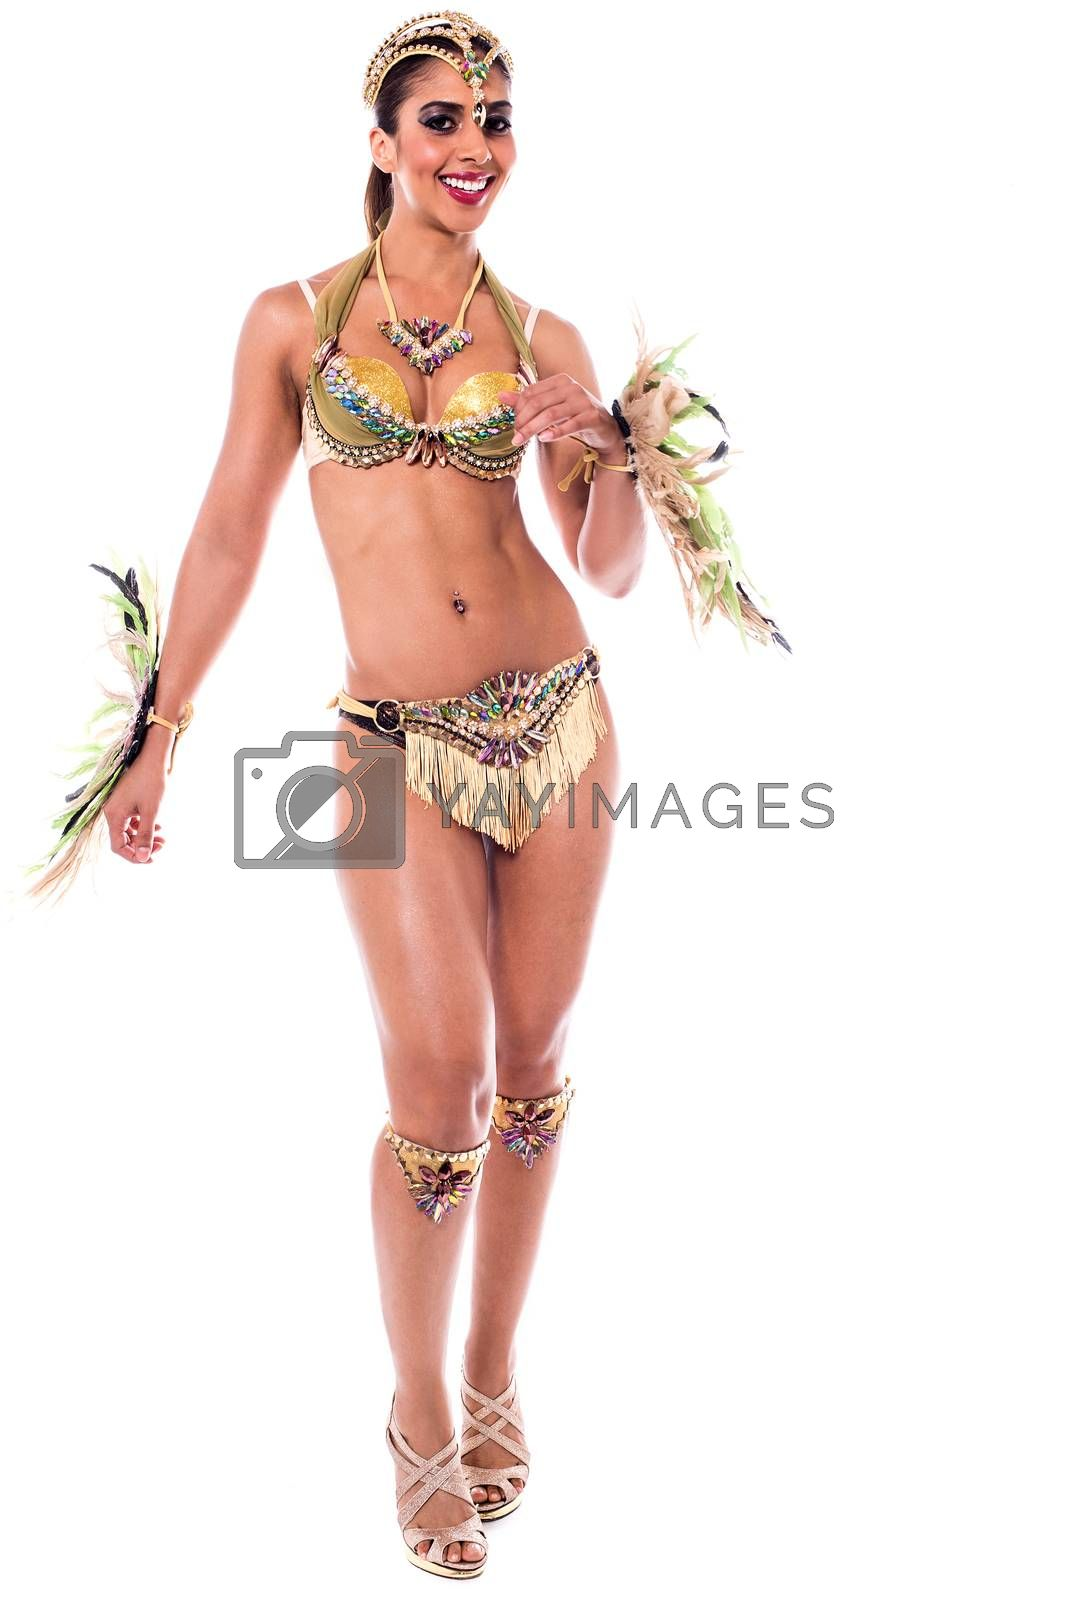 Beautiful carnival dancer in sexy costume over white